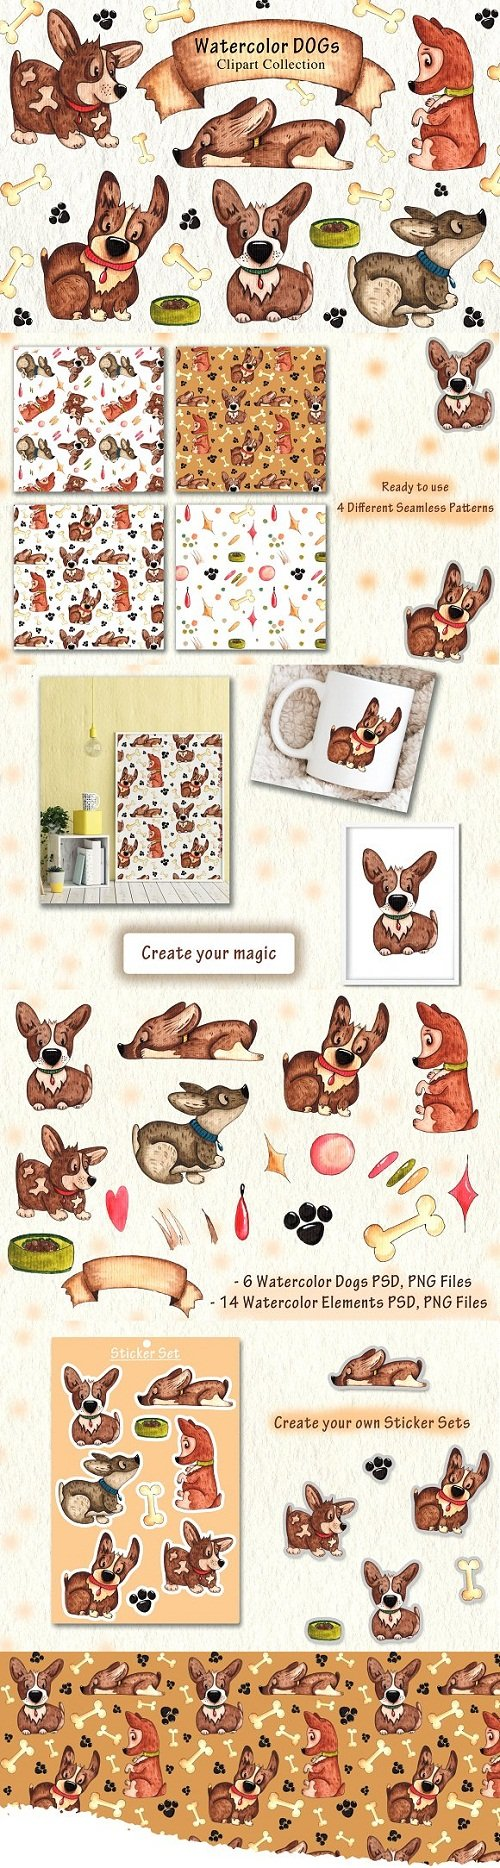 Watercolor DOGs Collection - 3487421